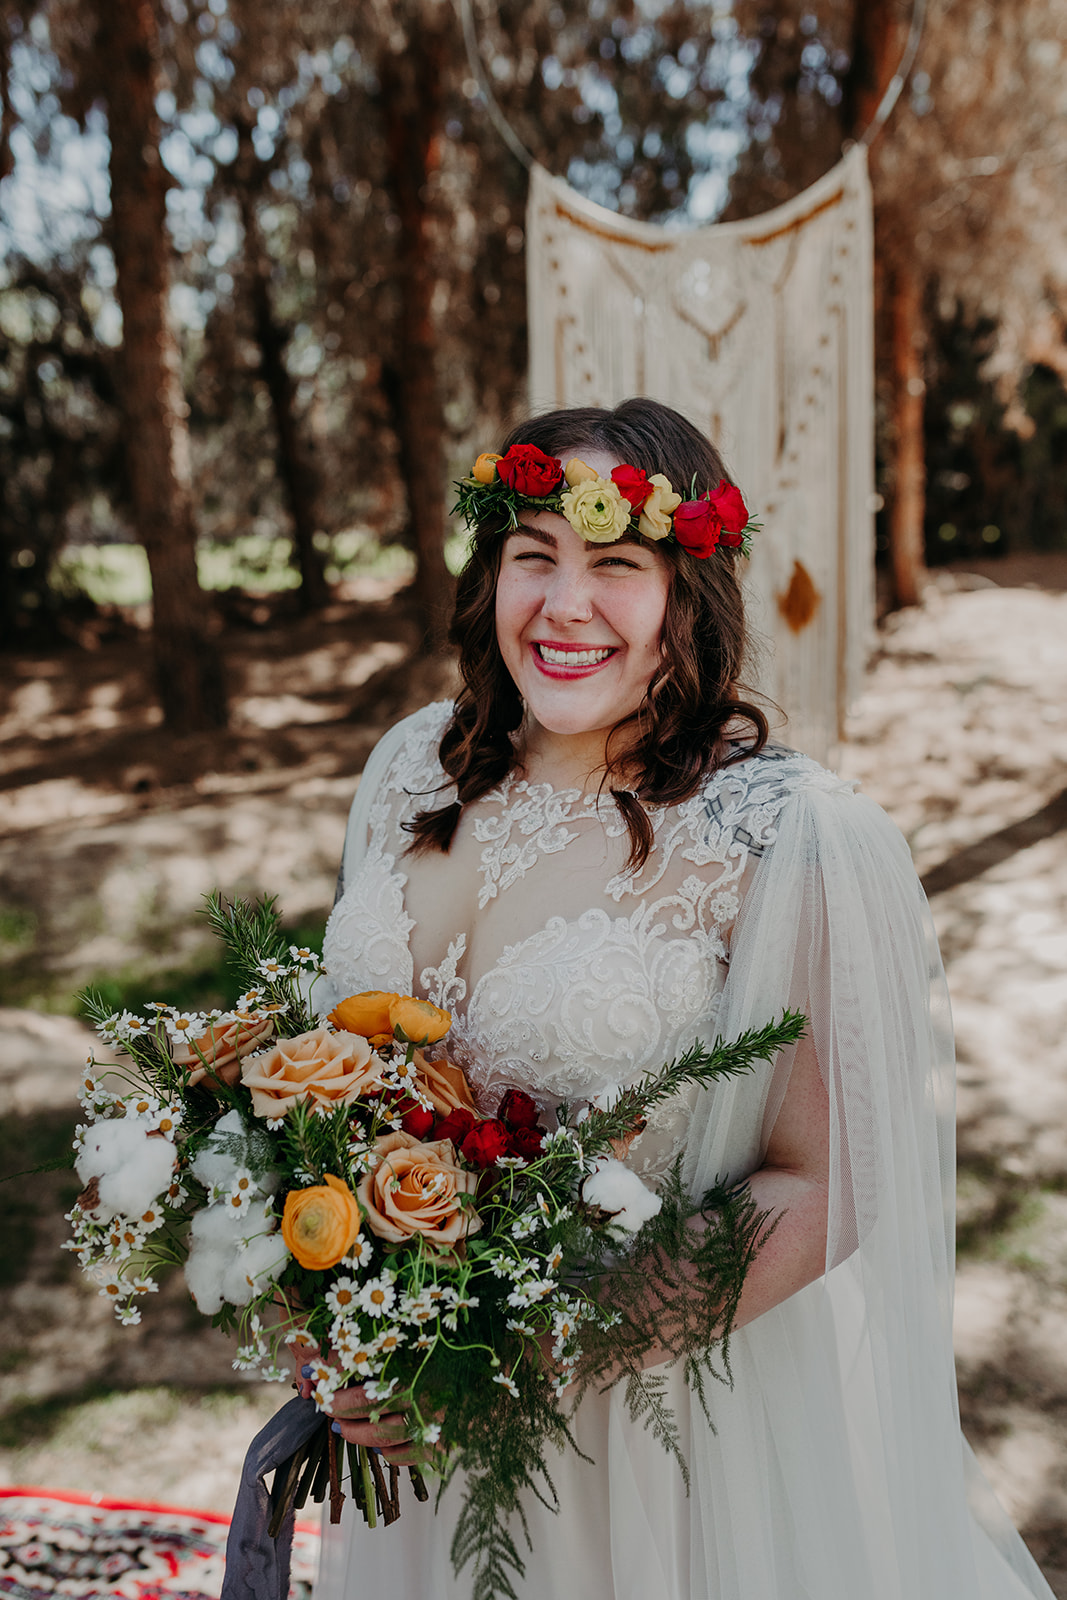 Disney Themed Wedding - Arizona florist Phoenix scottsdale Mesa chandler Sedona Flagstaff Prescott - Bridal Style Inspiration - Flower Crown and bouquet with ranunculus, roses, chamomile, cotton, and rosemary